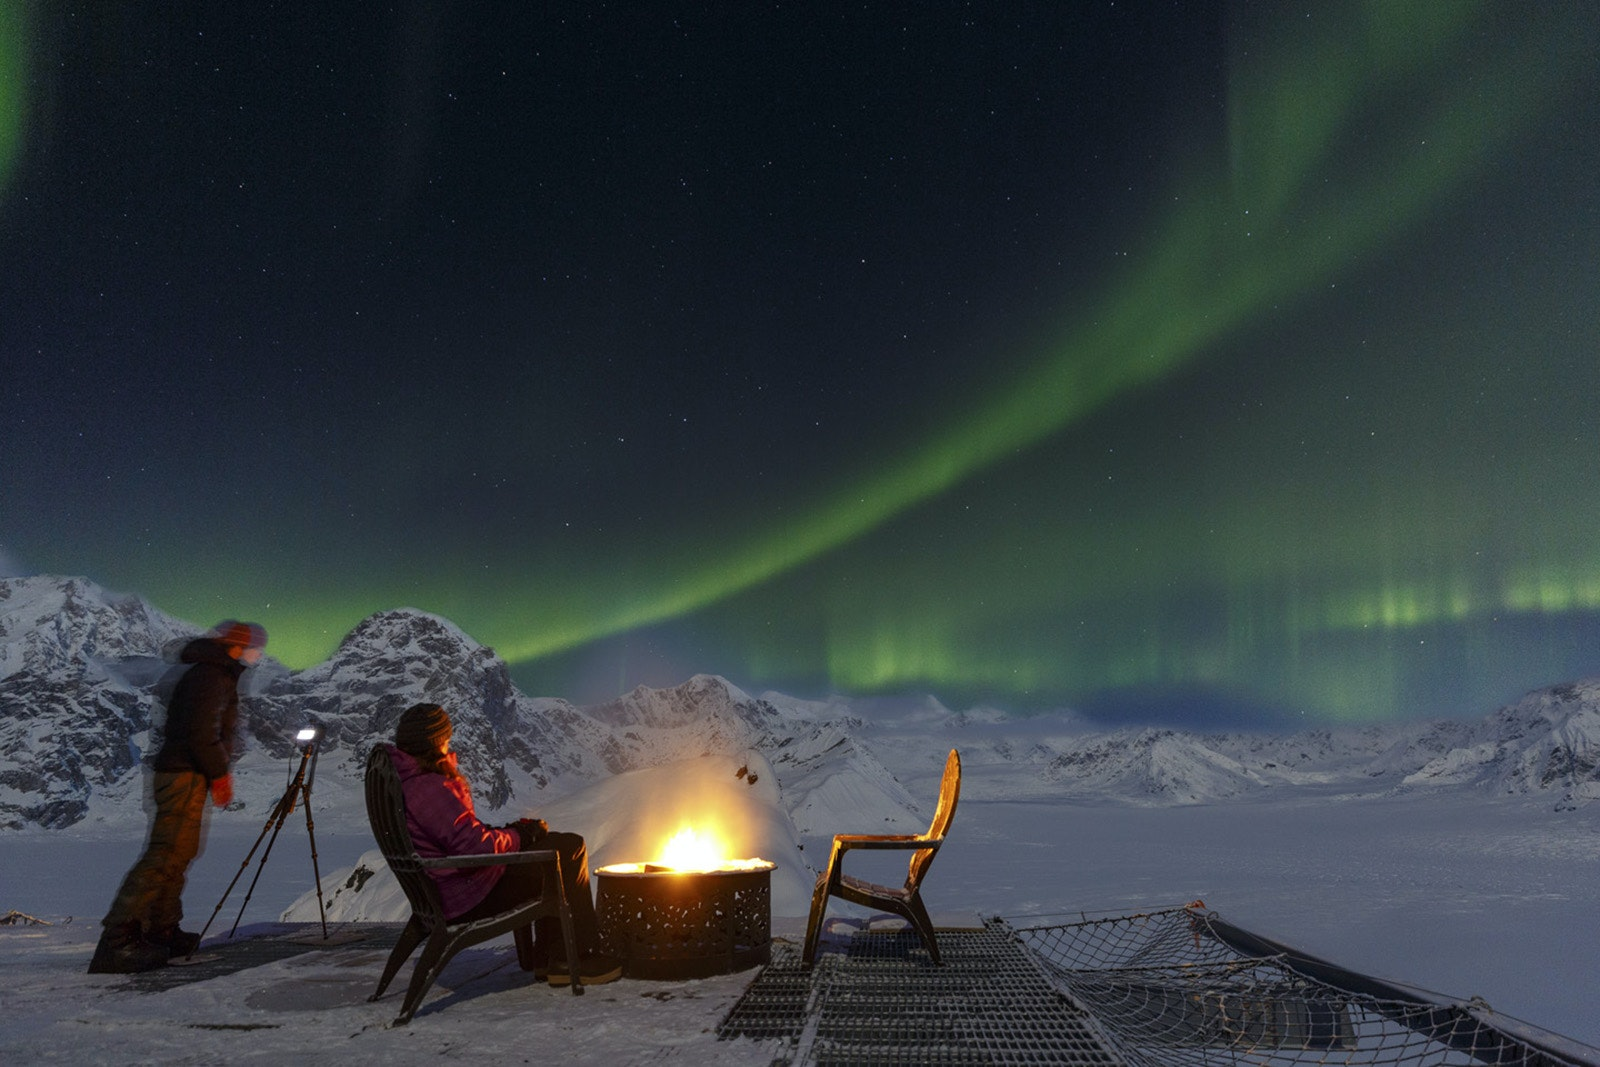 While the snowy landscape may not change much over the seasons, winter's dark nights make for perfect aurora borealis watching from the helipad.